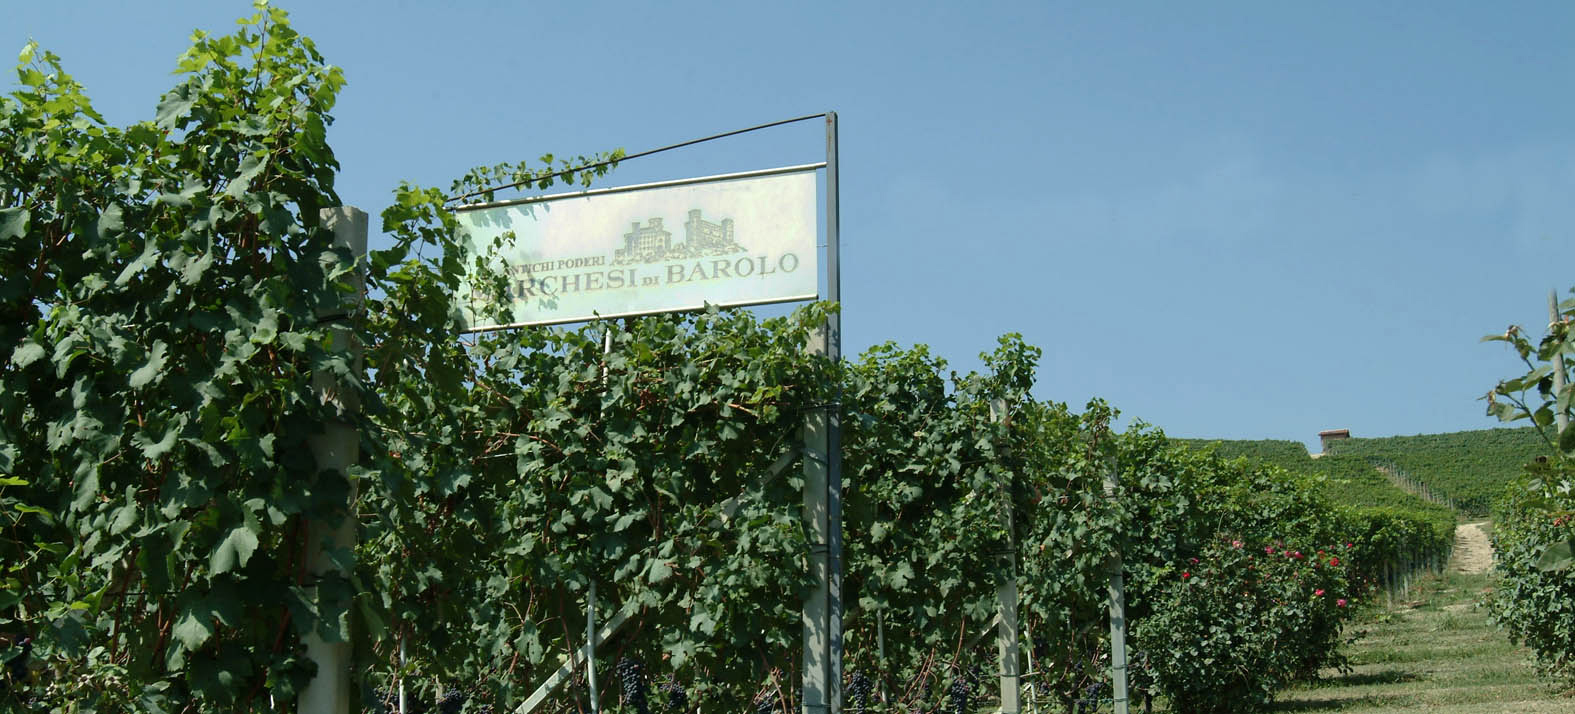 Marchesi di Barolo Winery